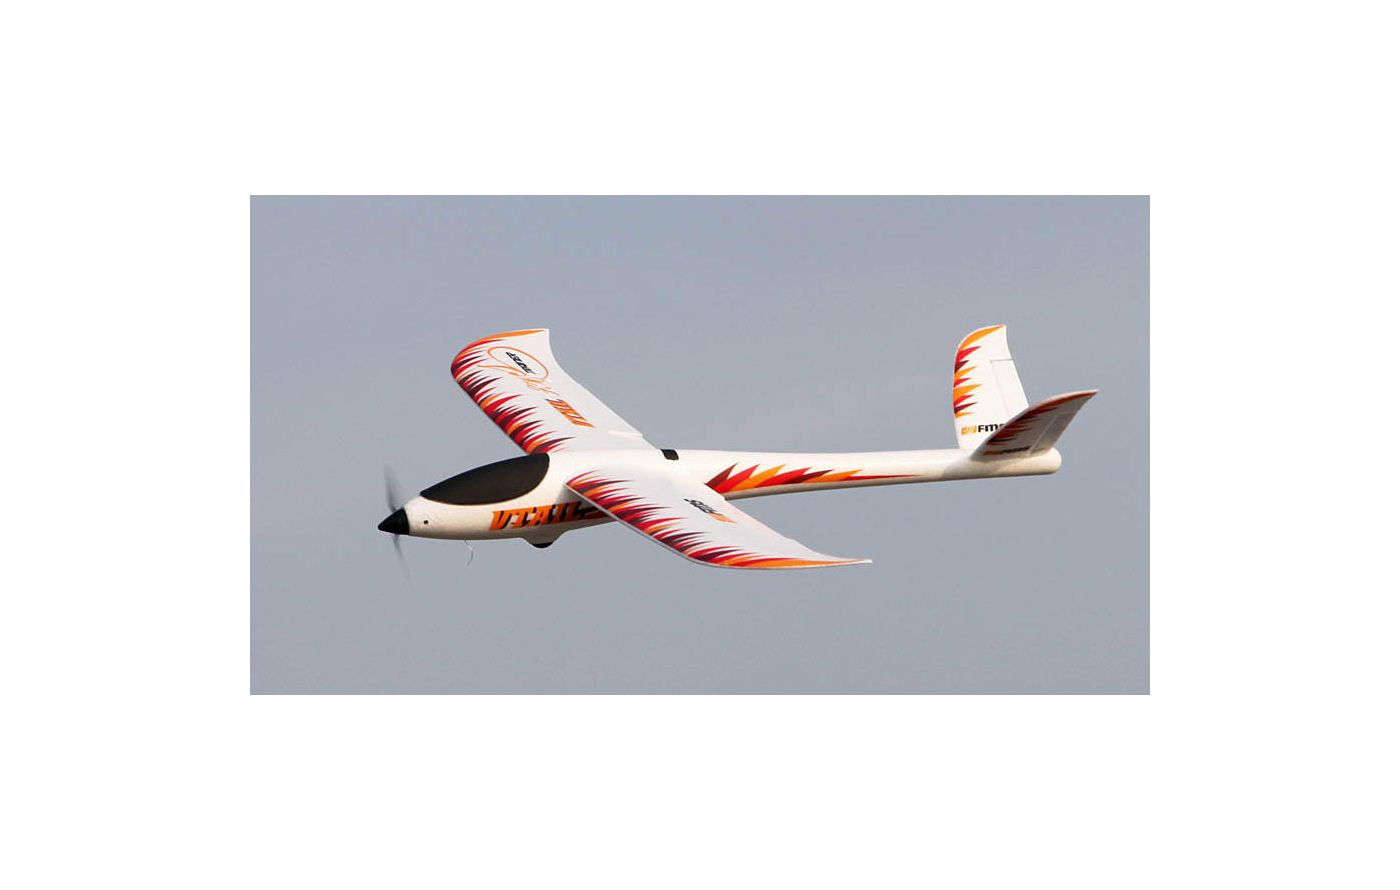 Image for V-tail RTF, 800mm from Force RC